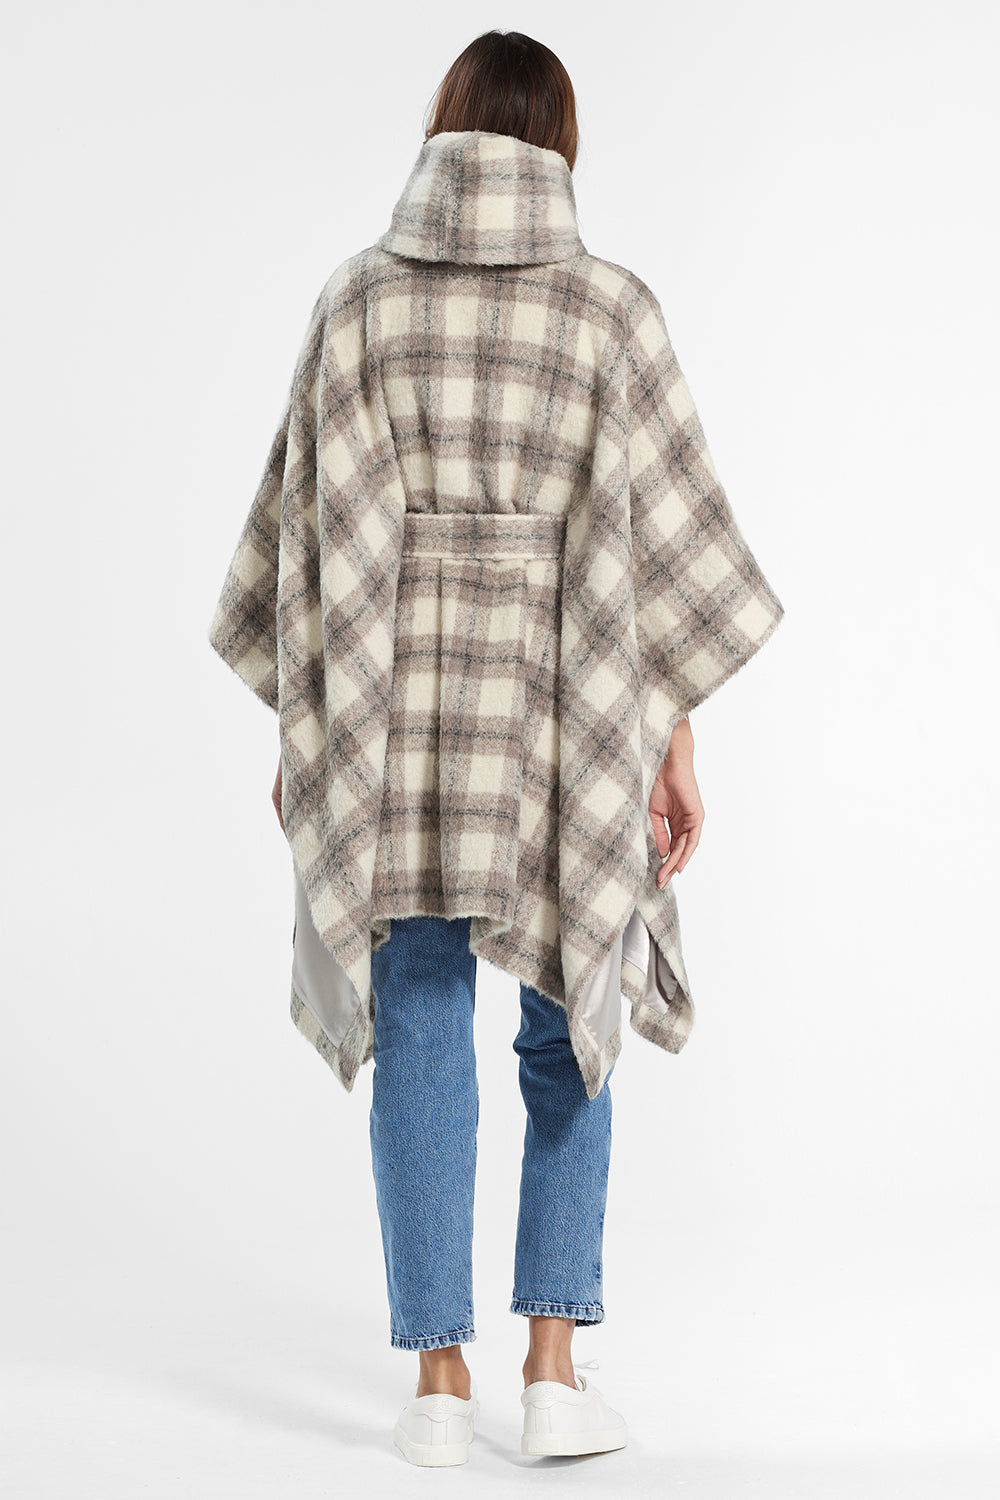 Sentaler Plaid Oversized Hooded Poncho with Belt featured in Suri Alpaca and available in Ecru Plaid. Seen from back.